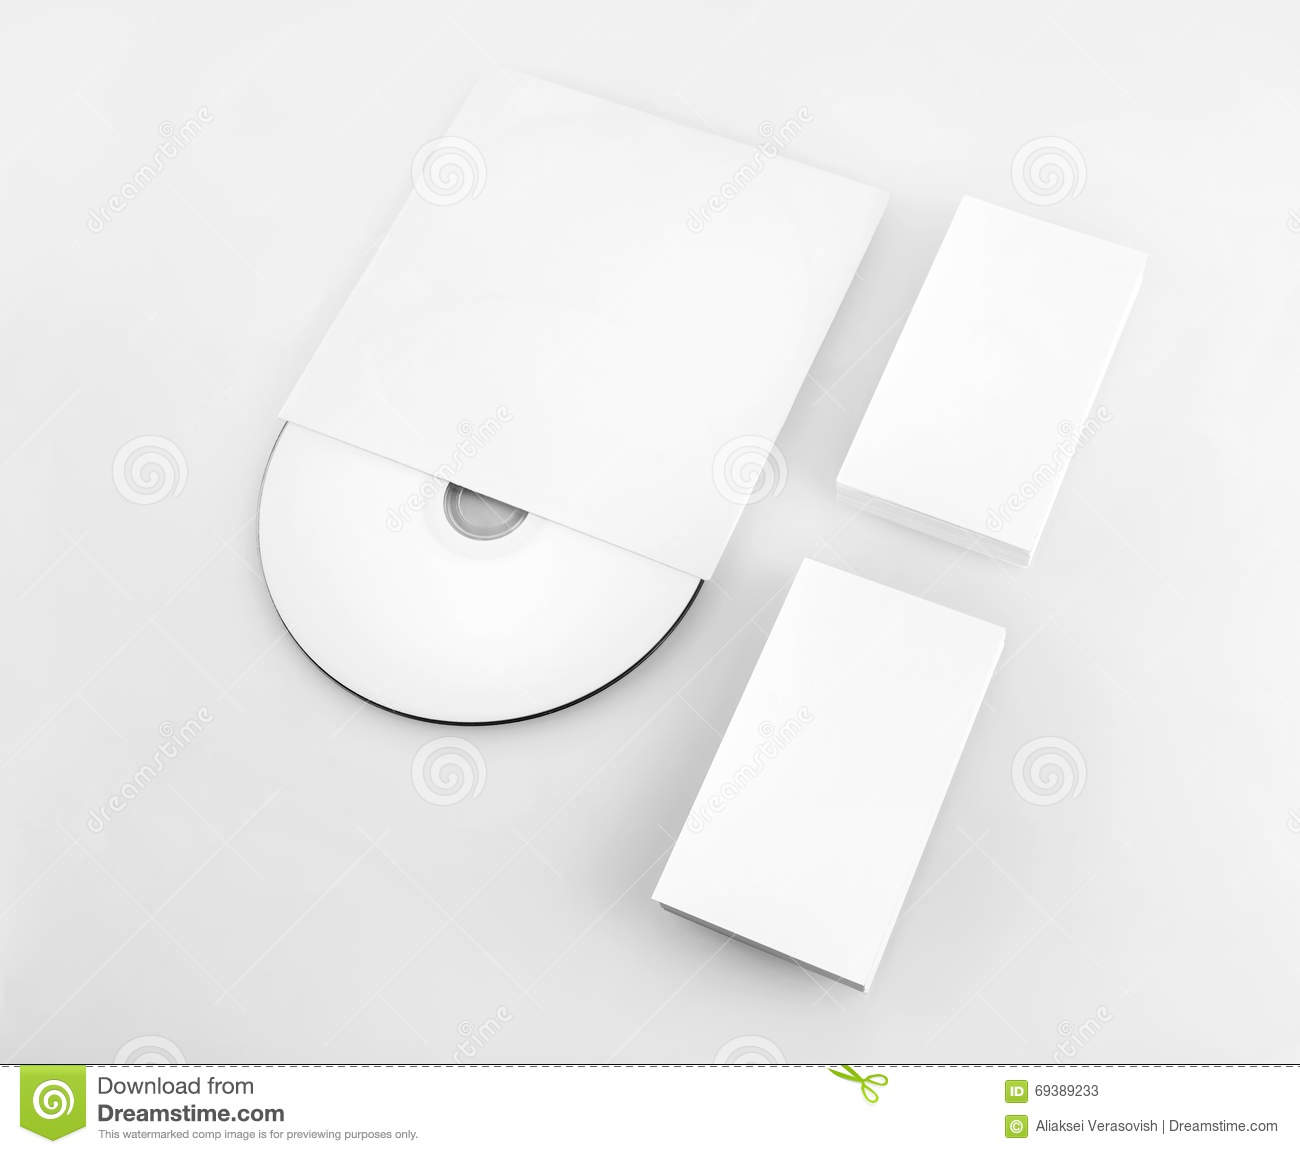 Blank business card cd choice image card design and card template blank business card cd choice image card design and card template blank business cards and cd reheart Images